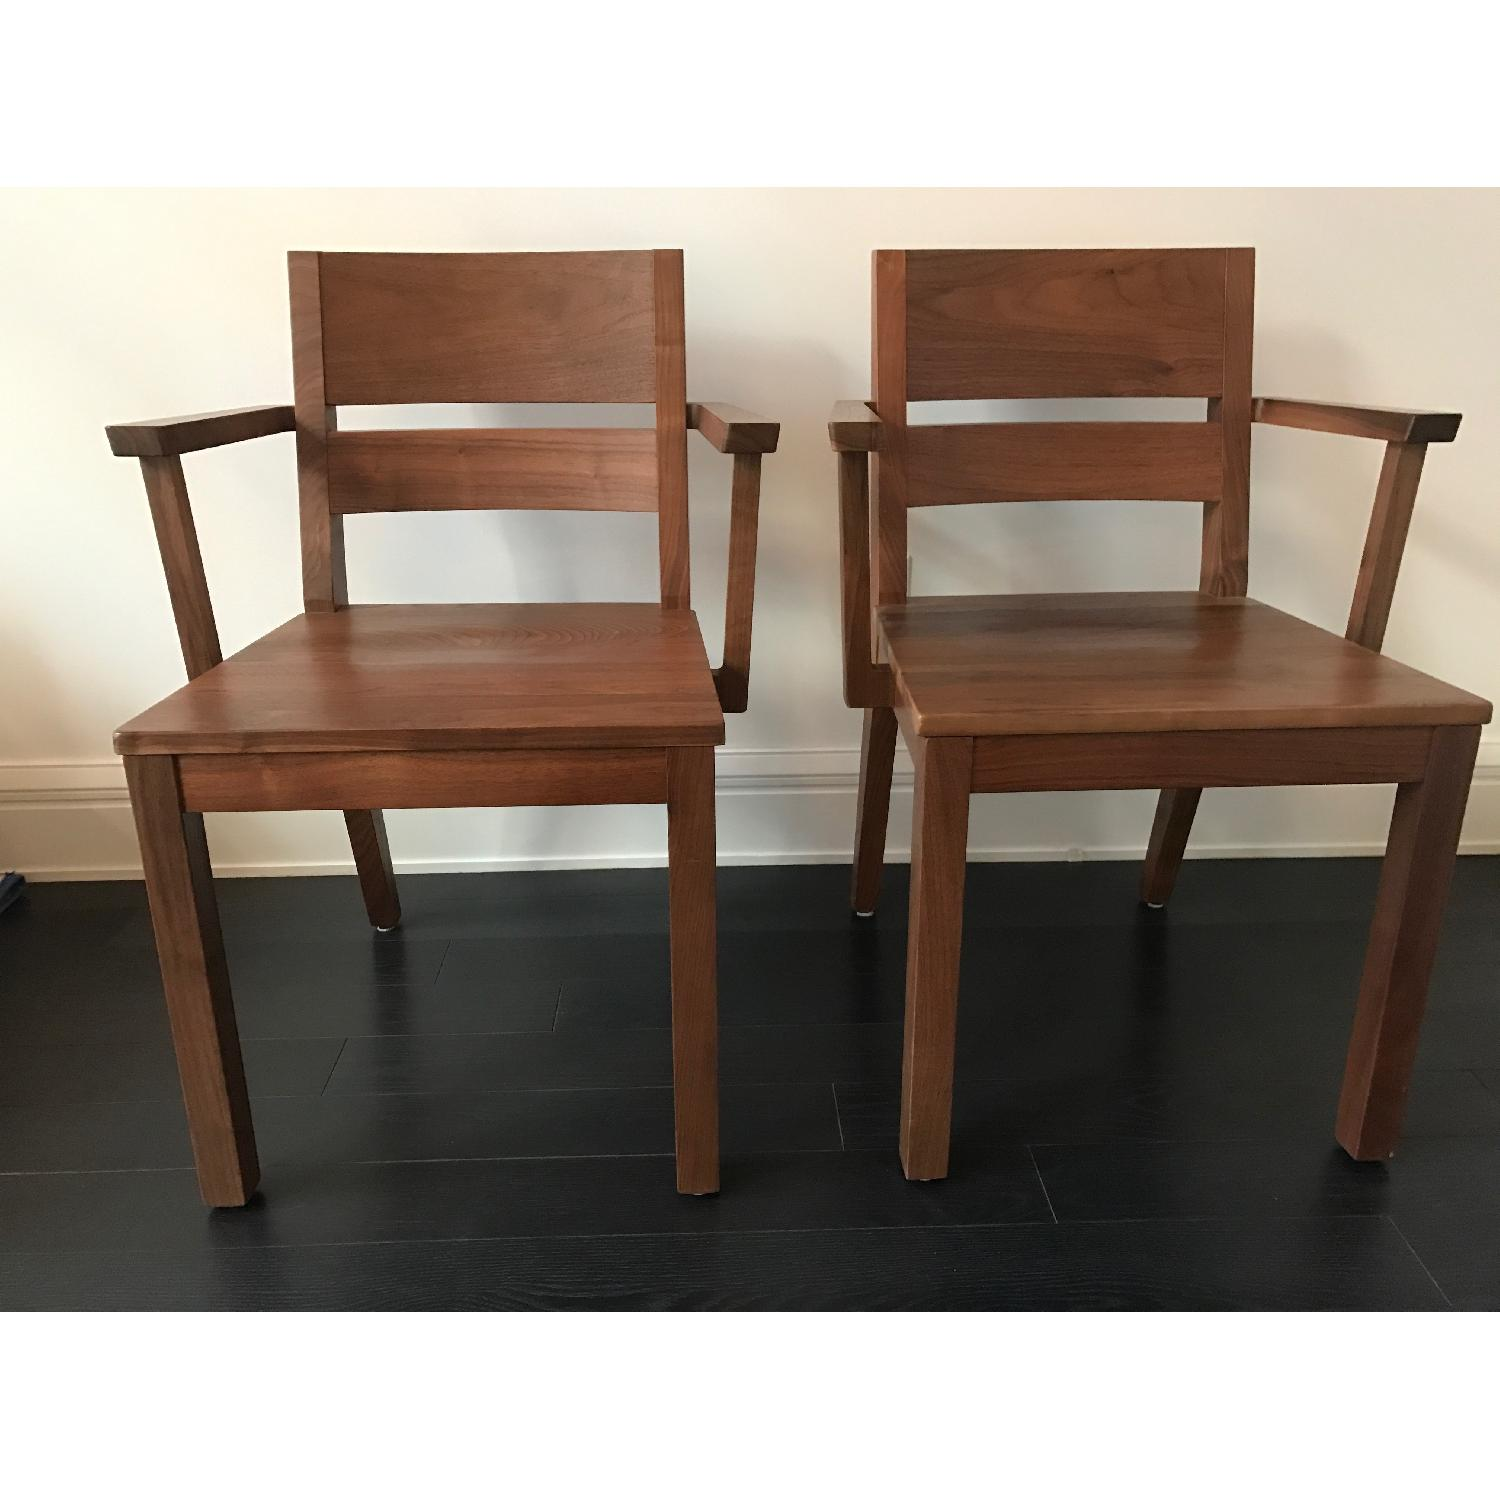 Room & Board Afton Walnut Dining Chair w/ Arms - image-1